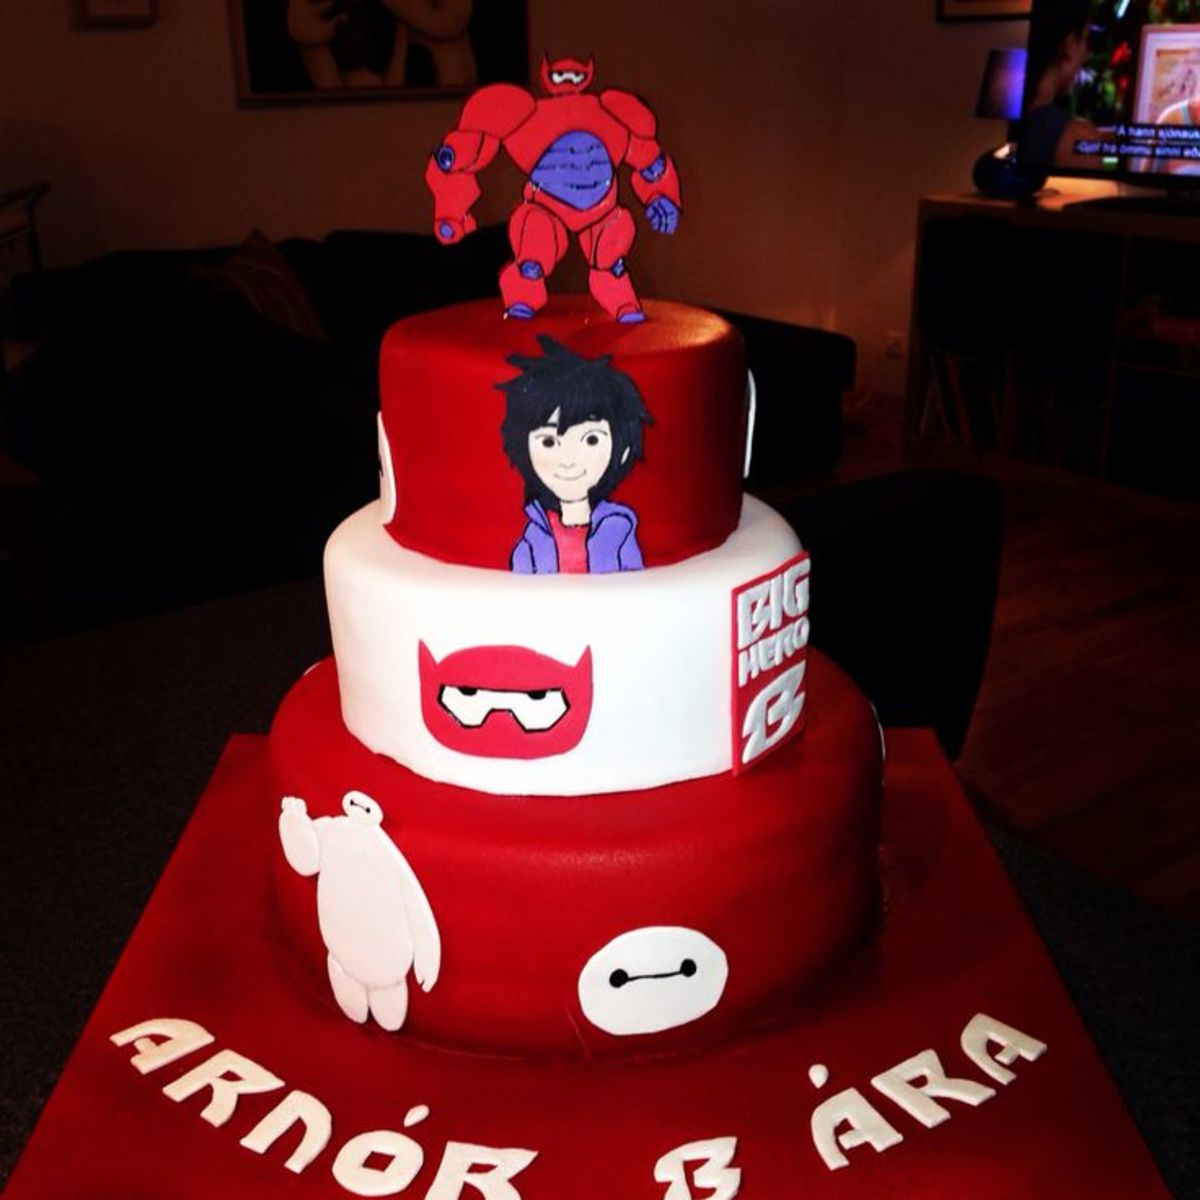 Big Hero 6 Birthday Cake in Tiers